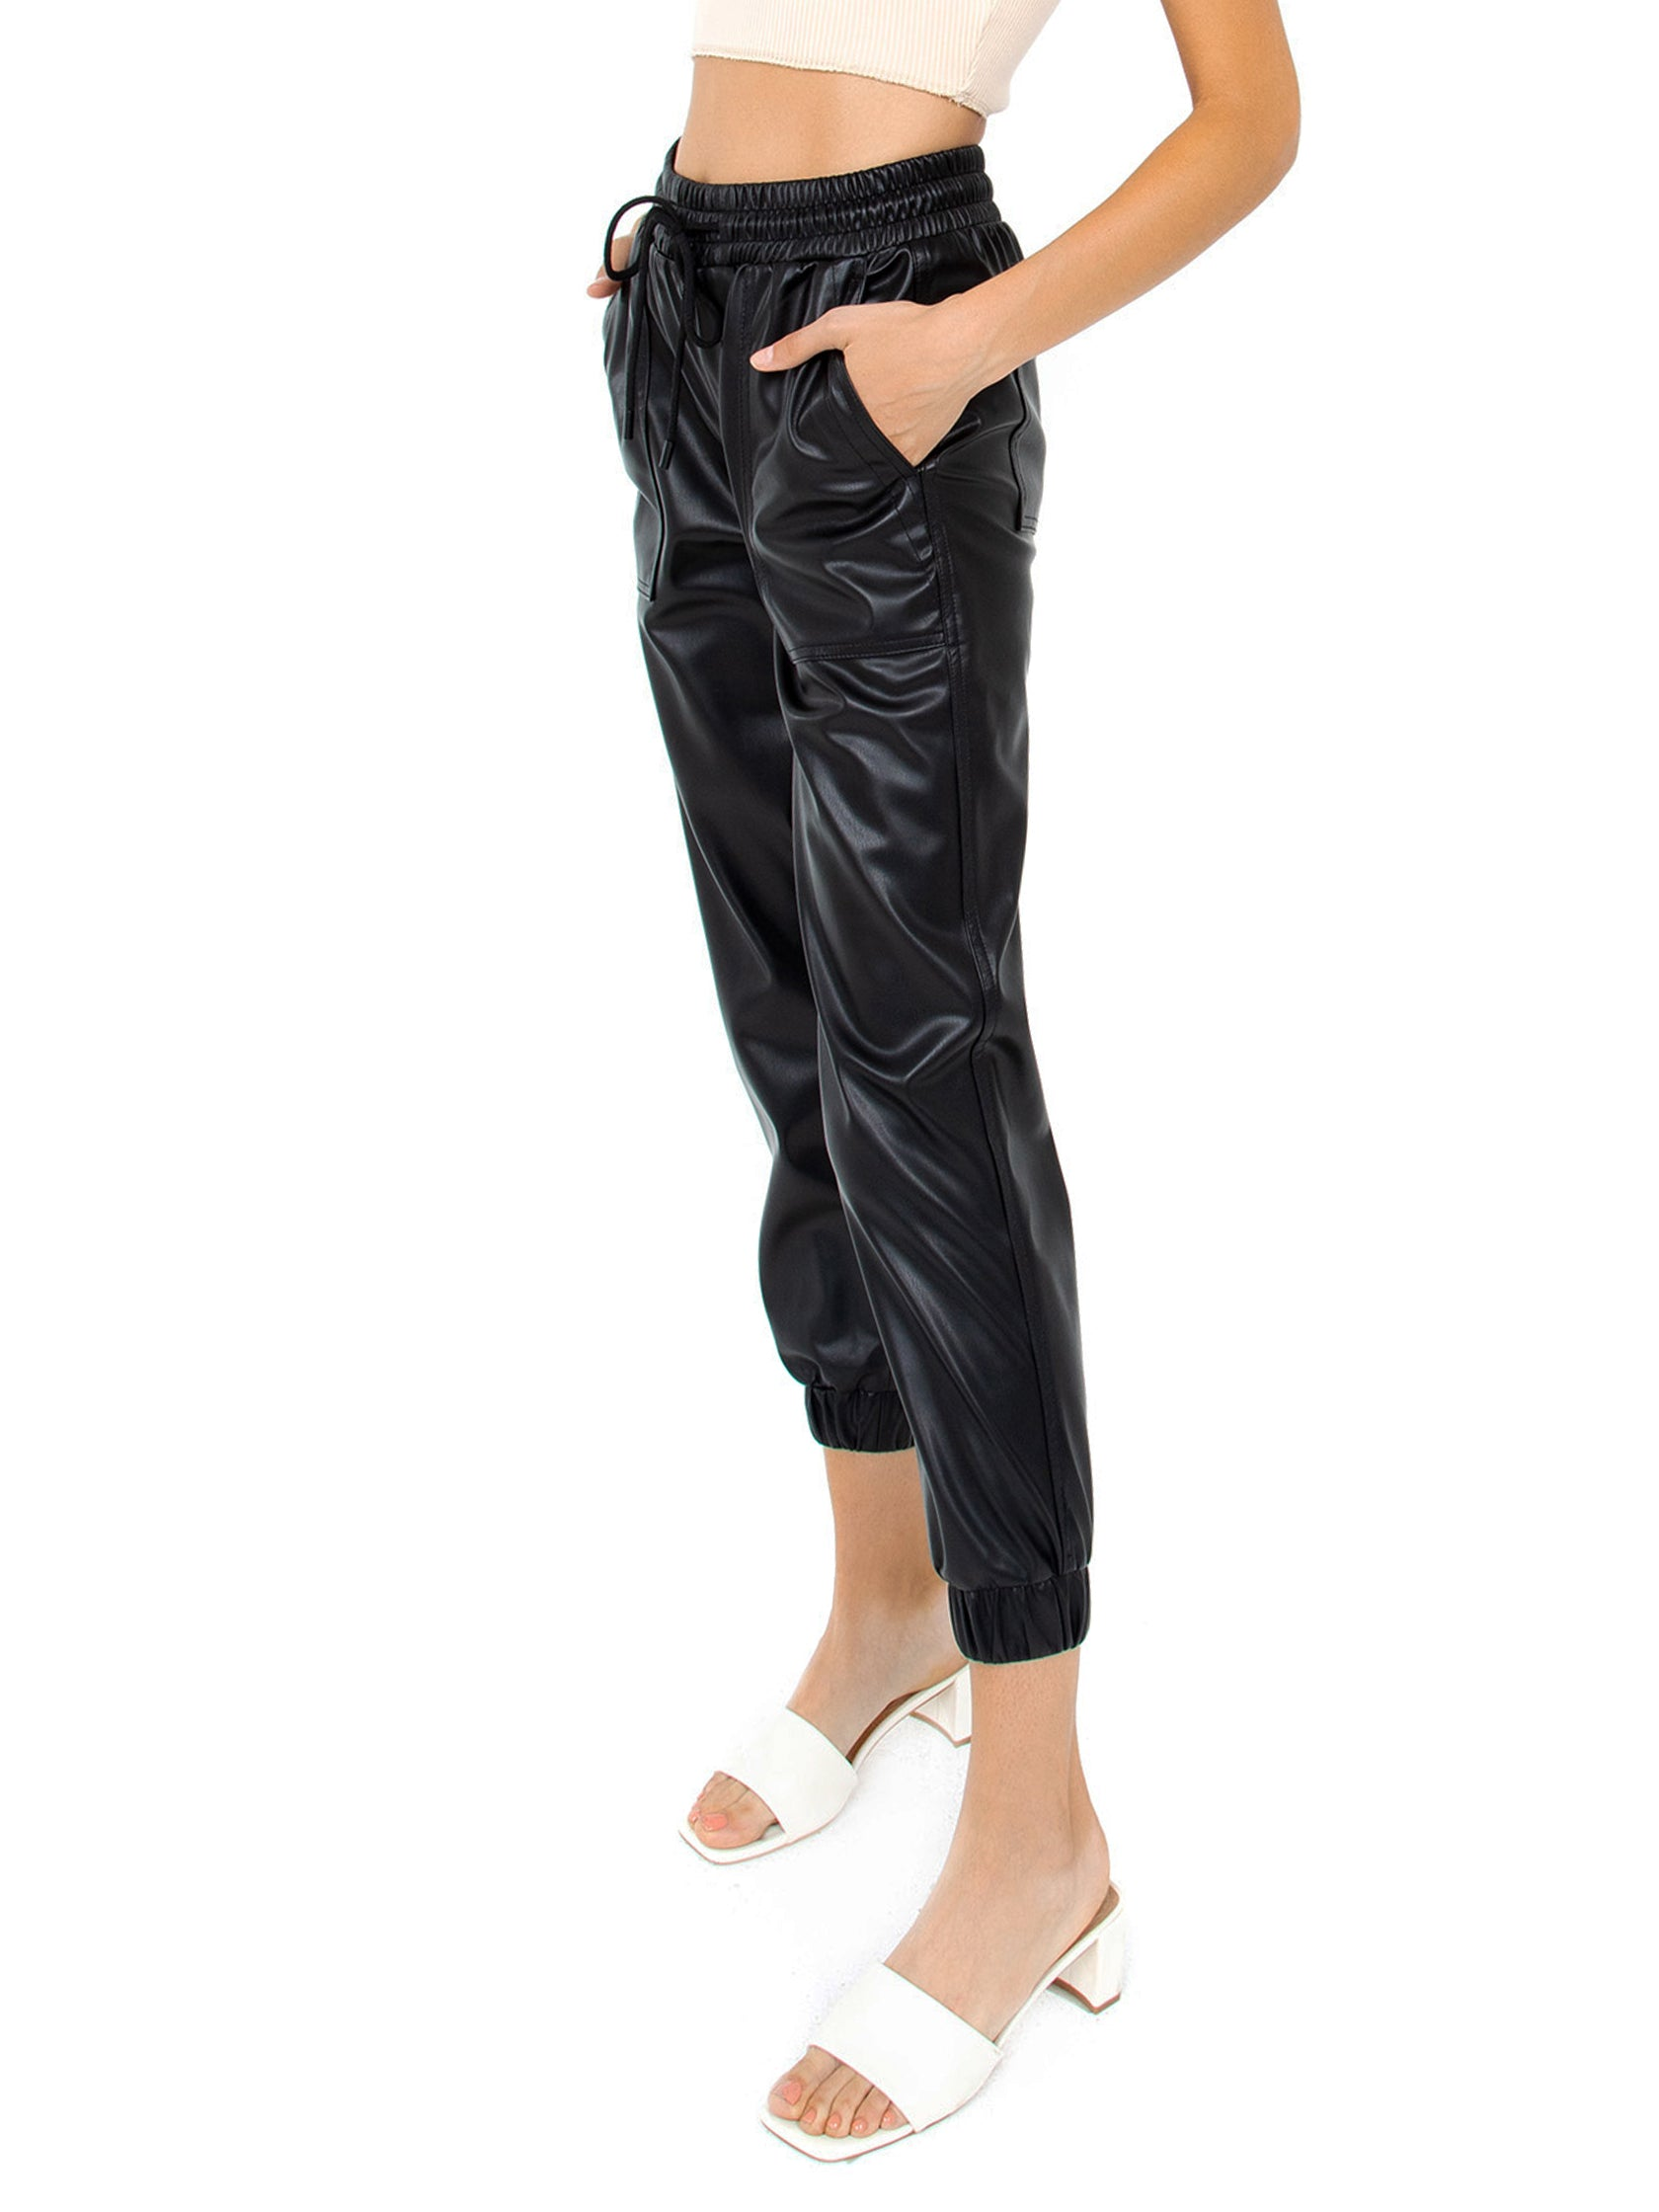 Women wearing a pants rental from BLANKNYC called Faux Leather Jogger